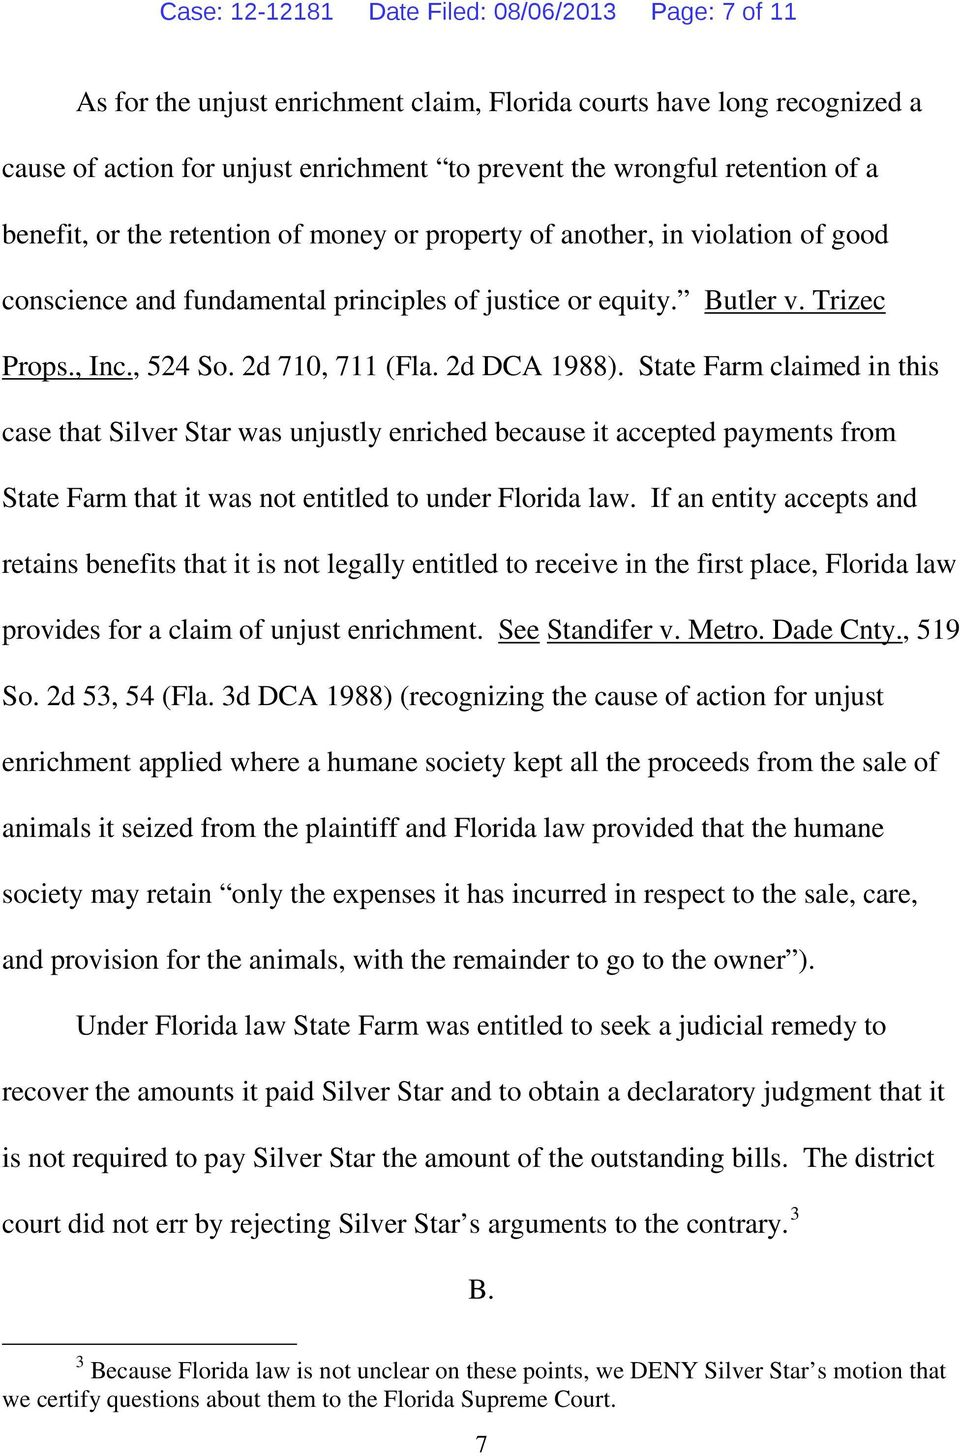 2d 710, 711 (Fla. 2d DCA 1988). State Farm claimed in this case that Silver Star was unjustly enriched because it accepted payments from State Farm that it was not entitled to under Florida law.